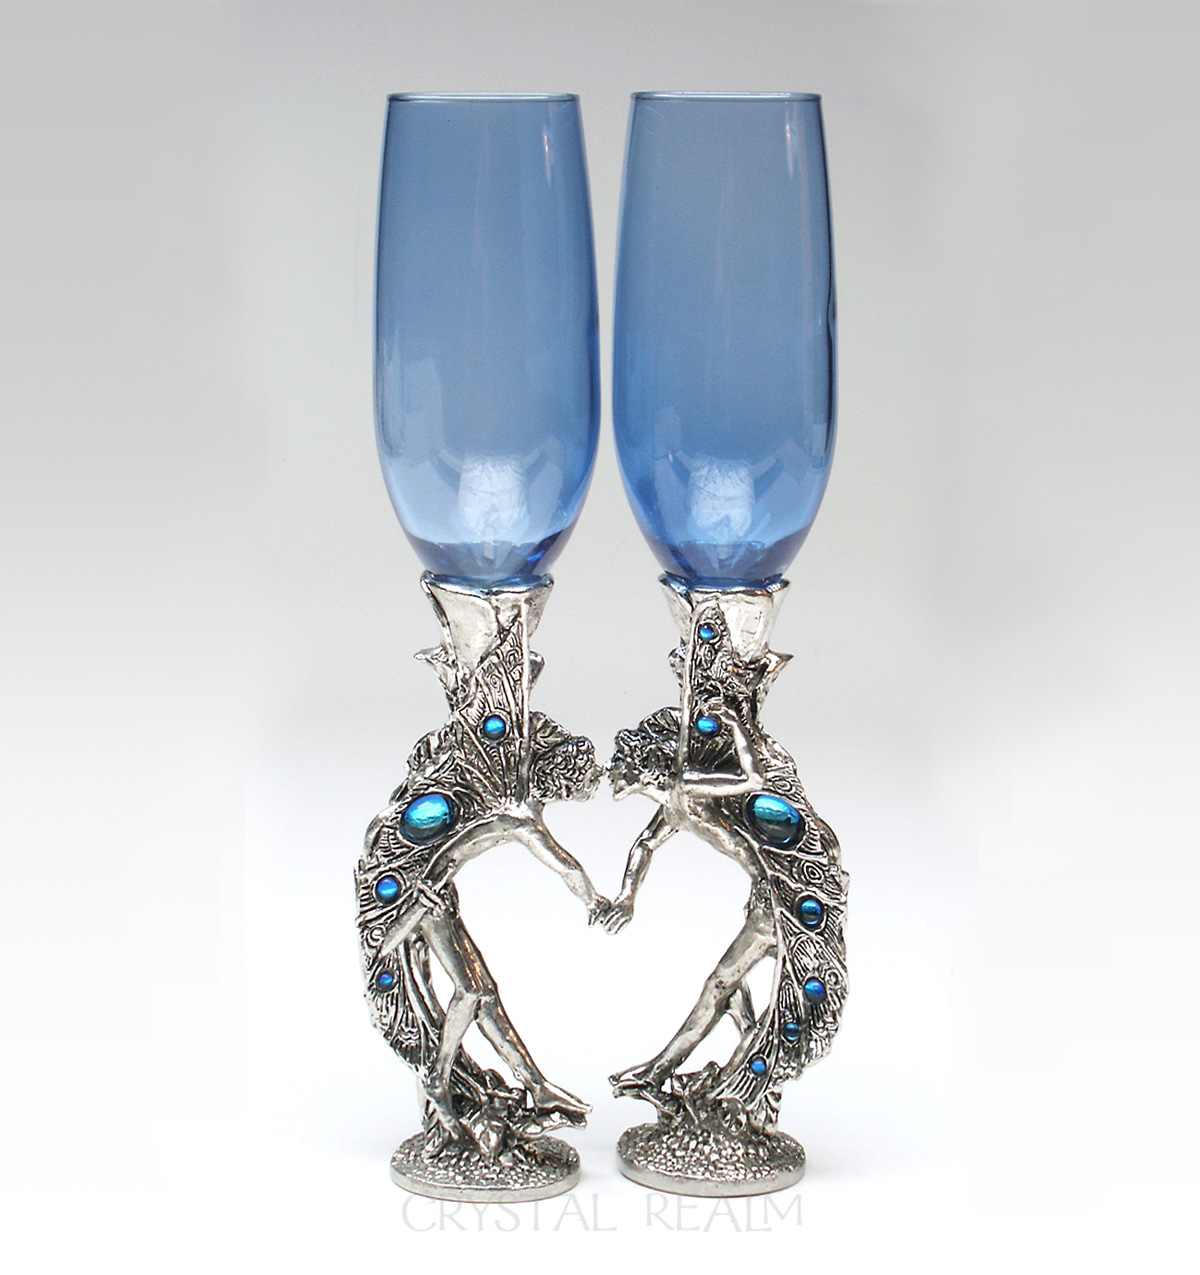 Boy-boy fairy heart toasting glasses in blue